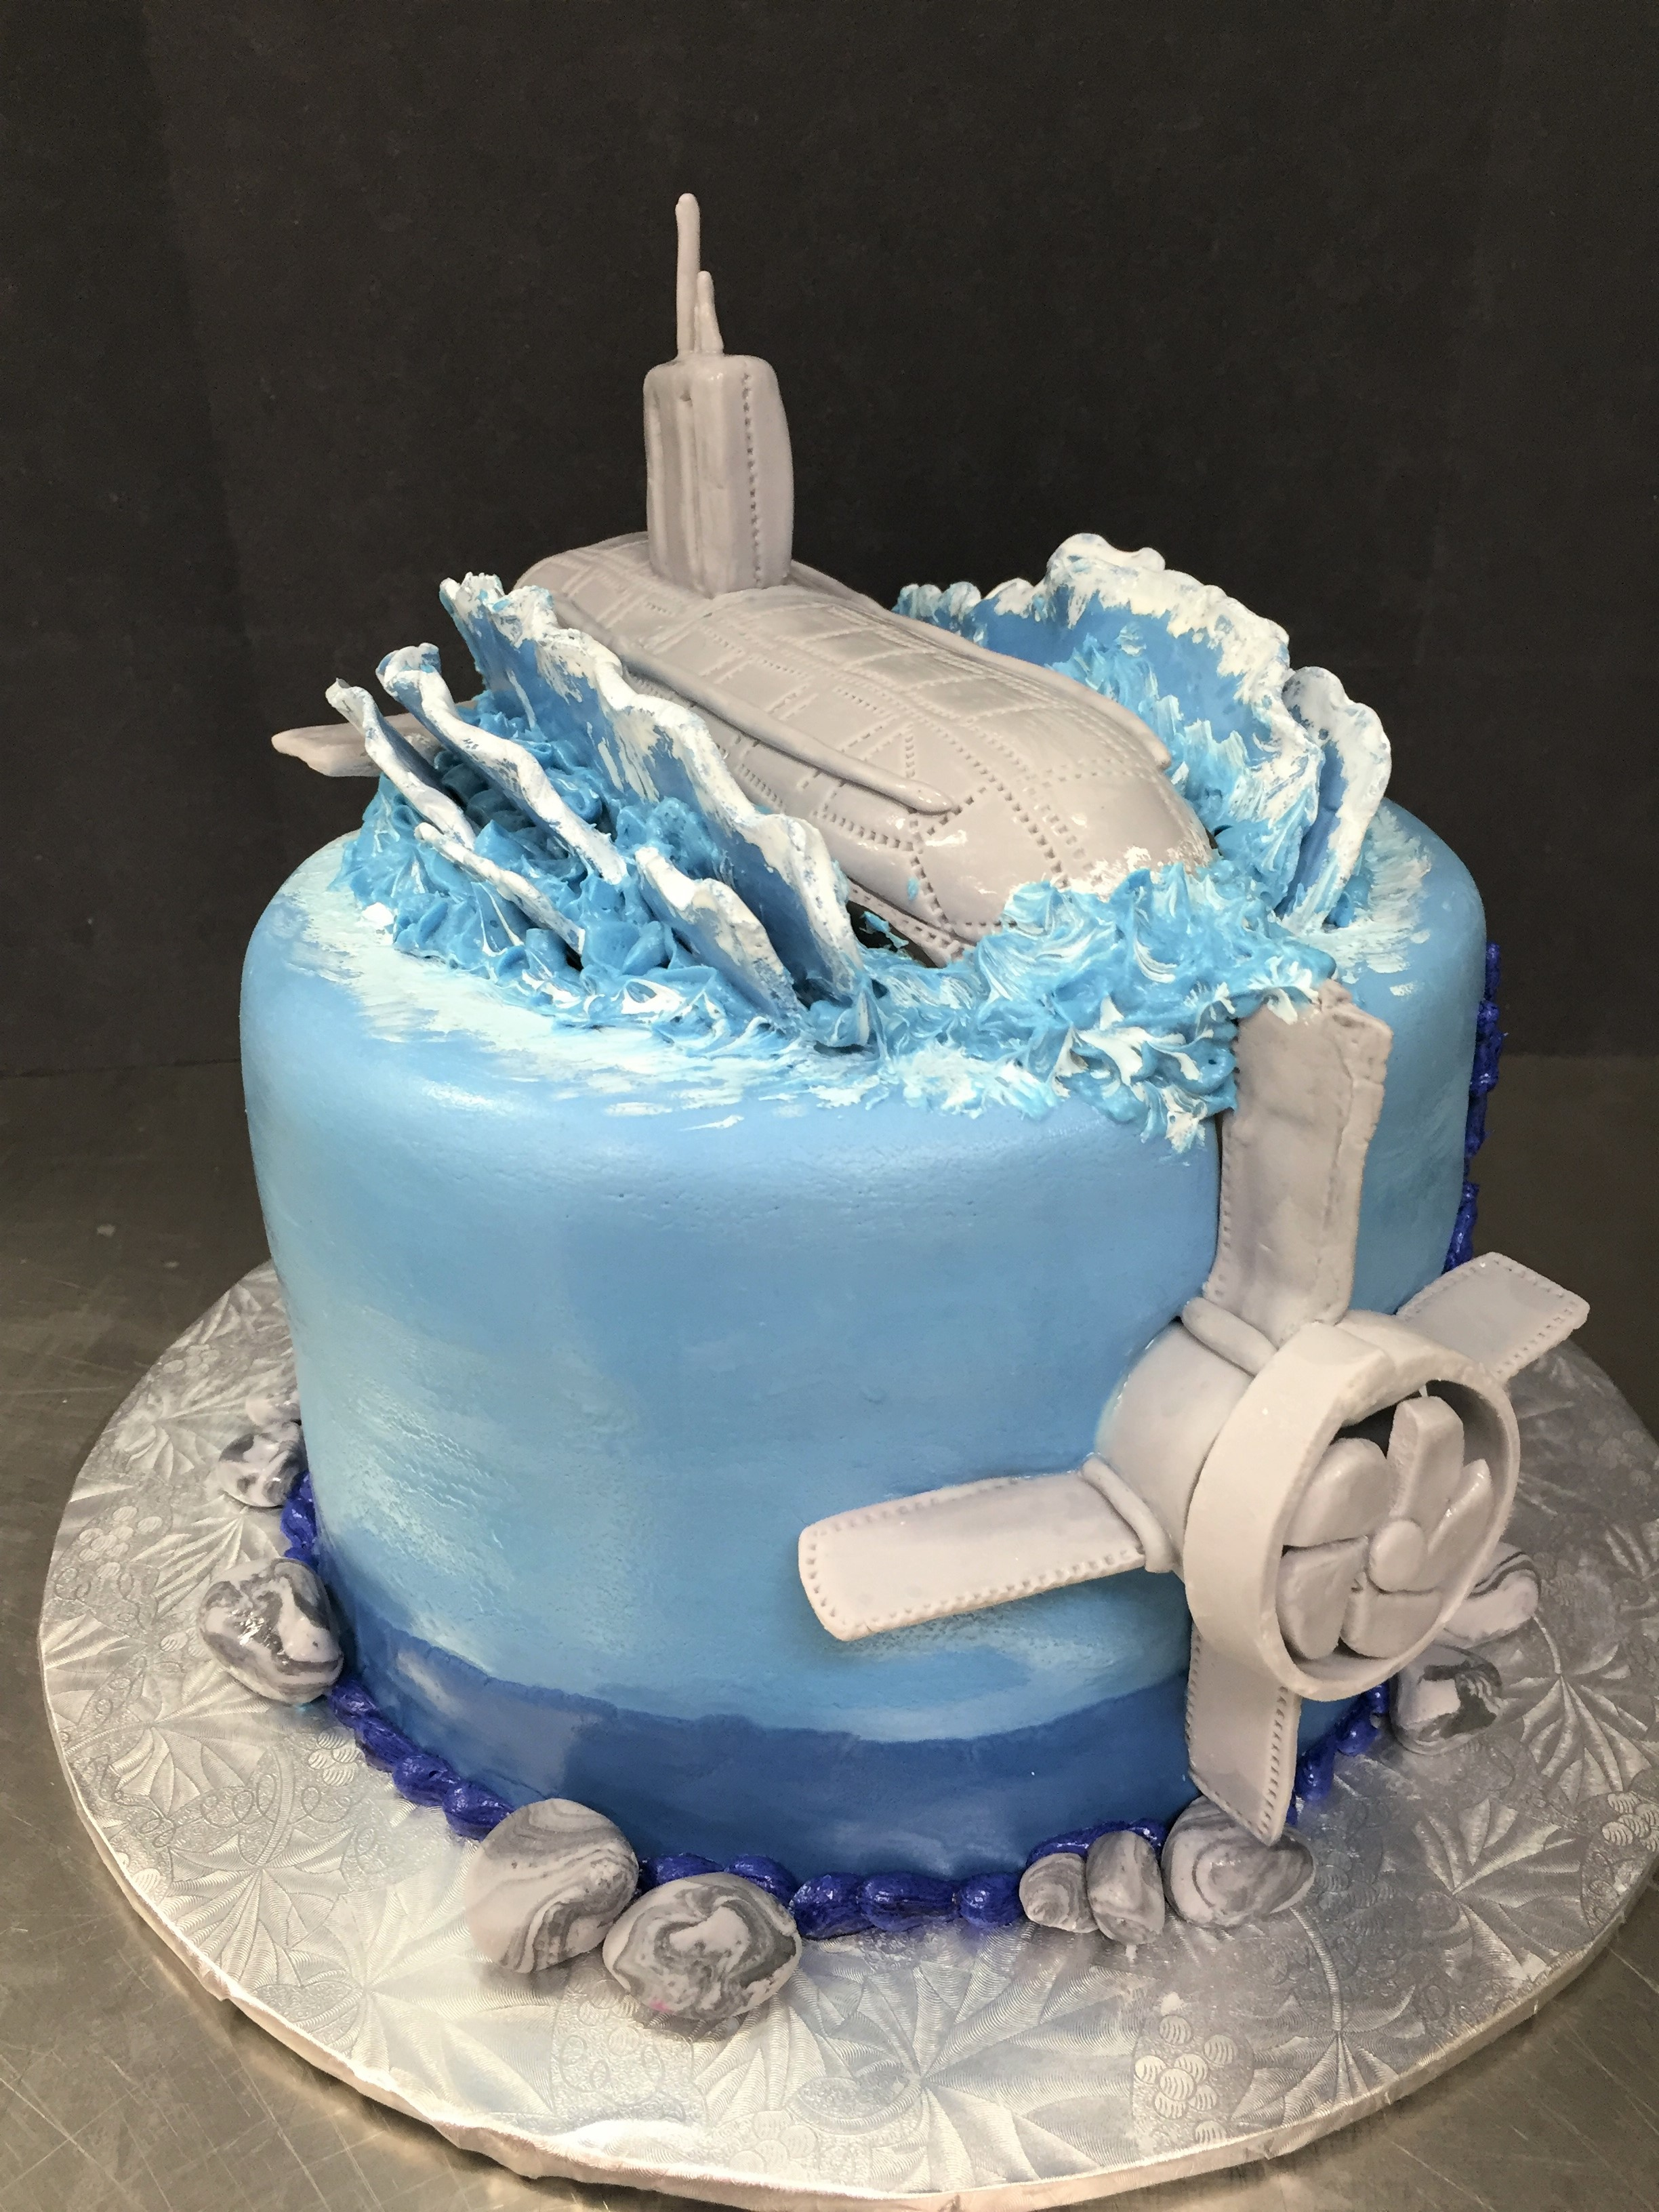 submarine cake.jpeg